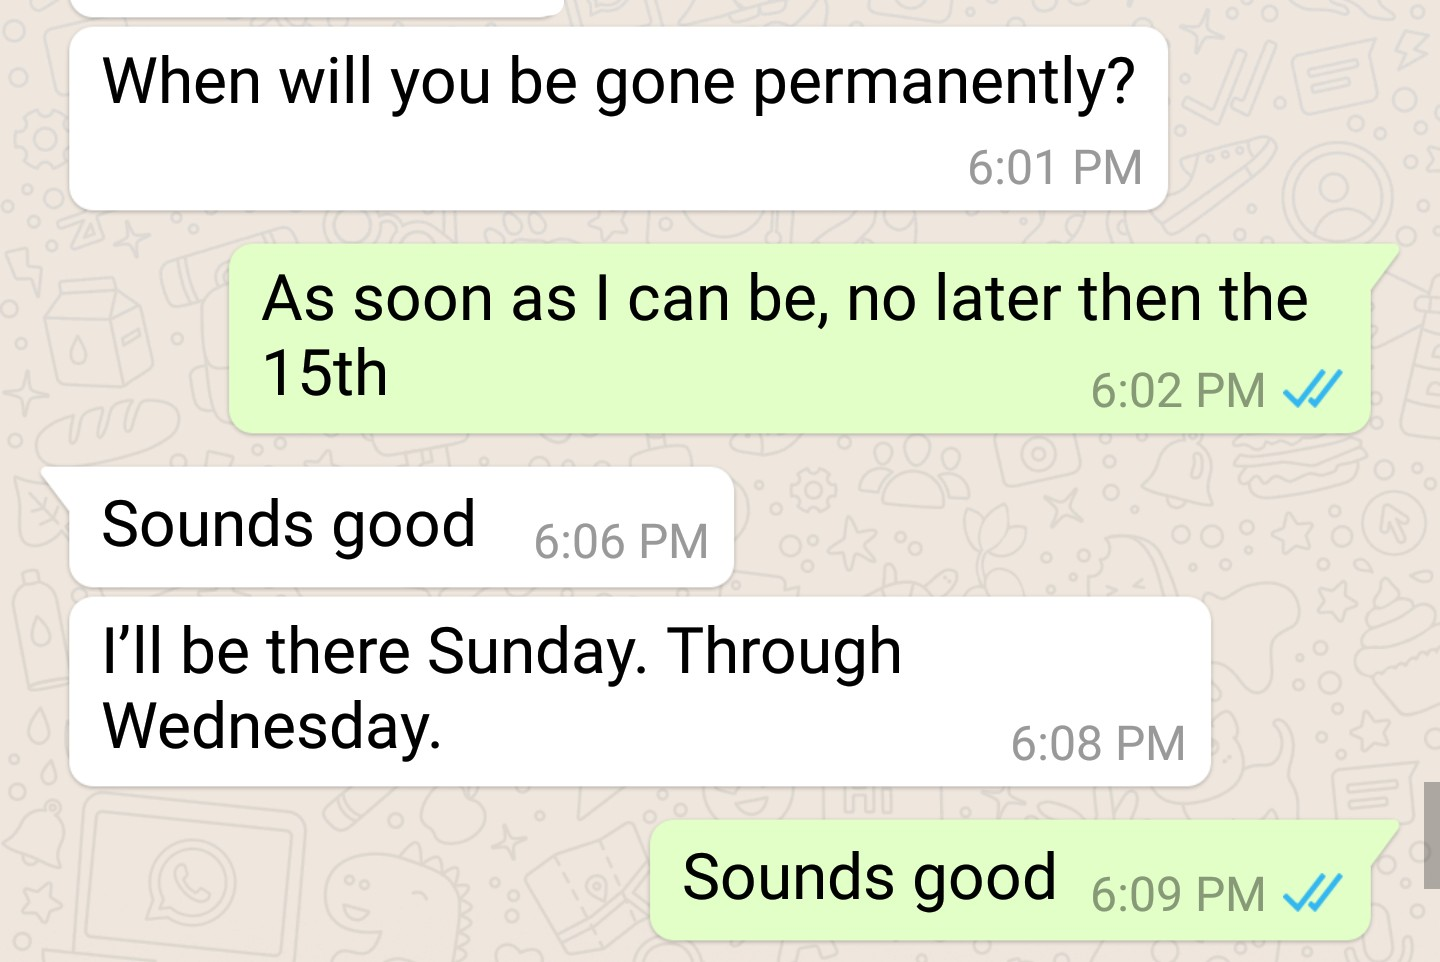 Conversation from July 24th with current roommate.